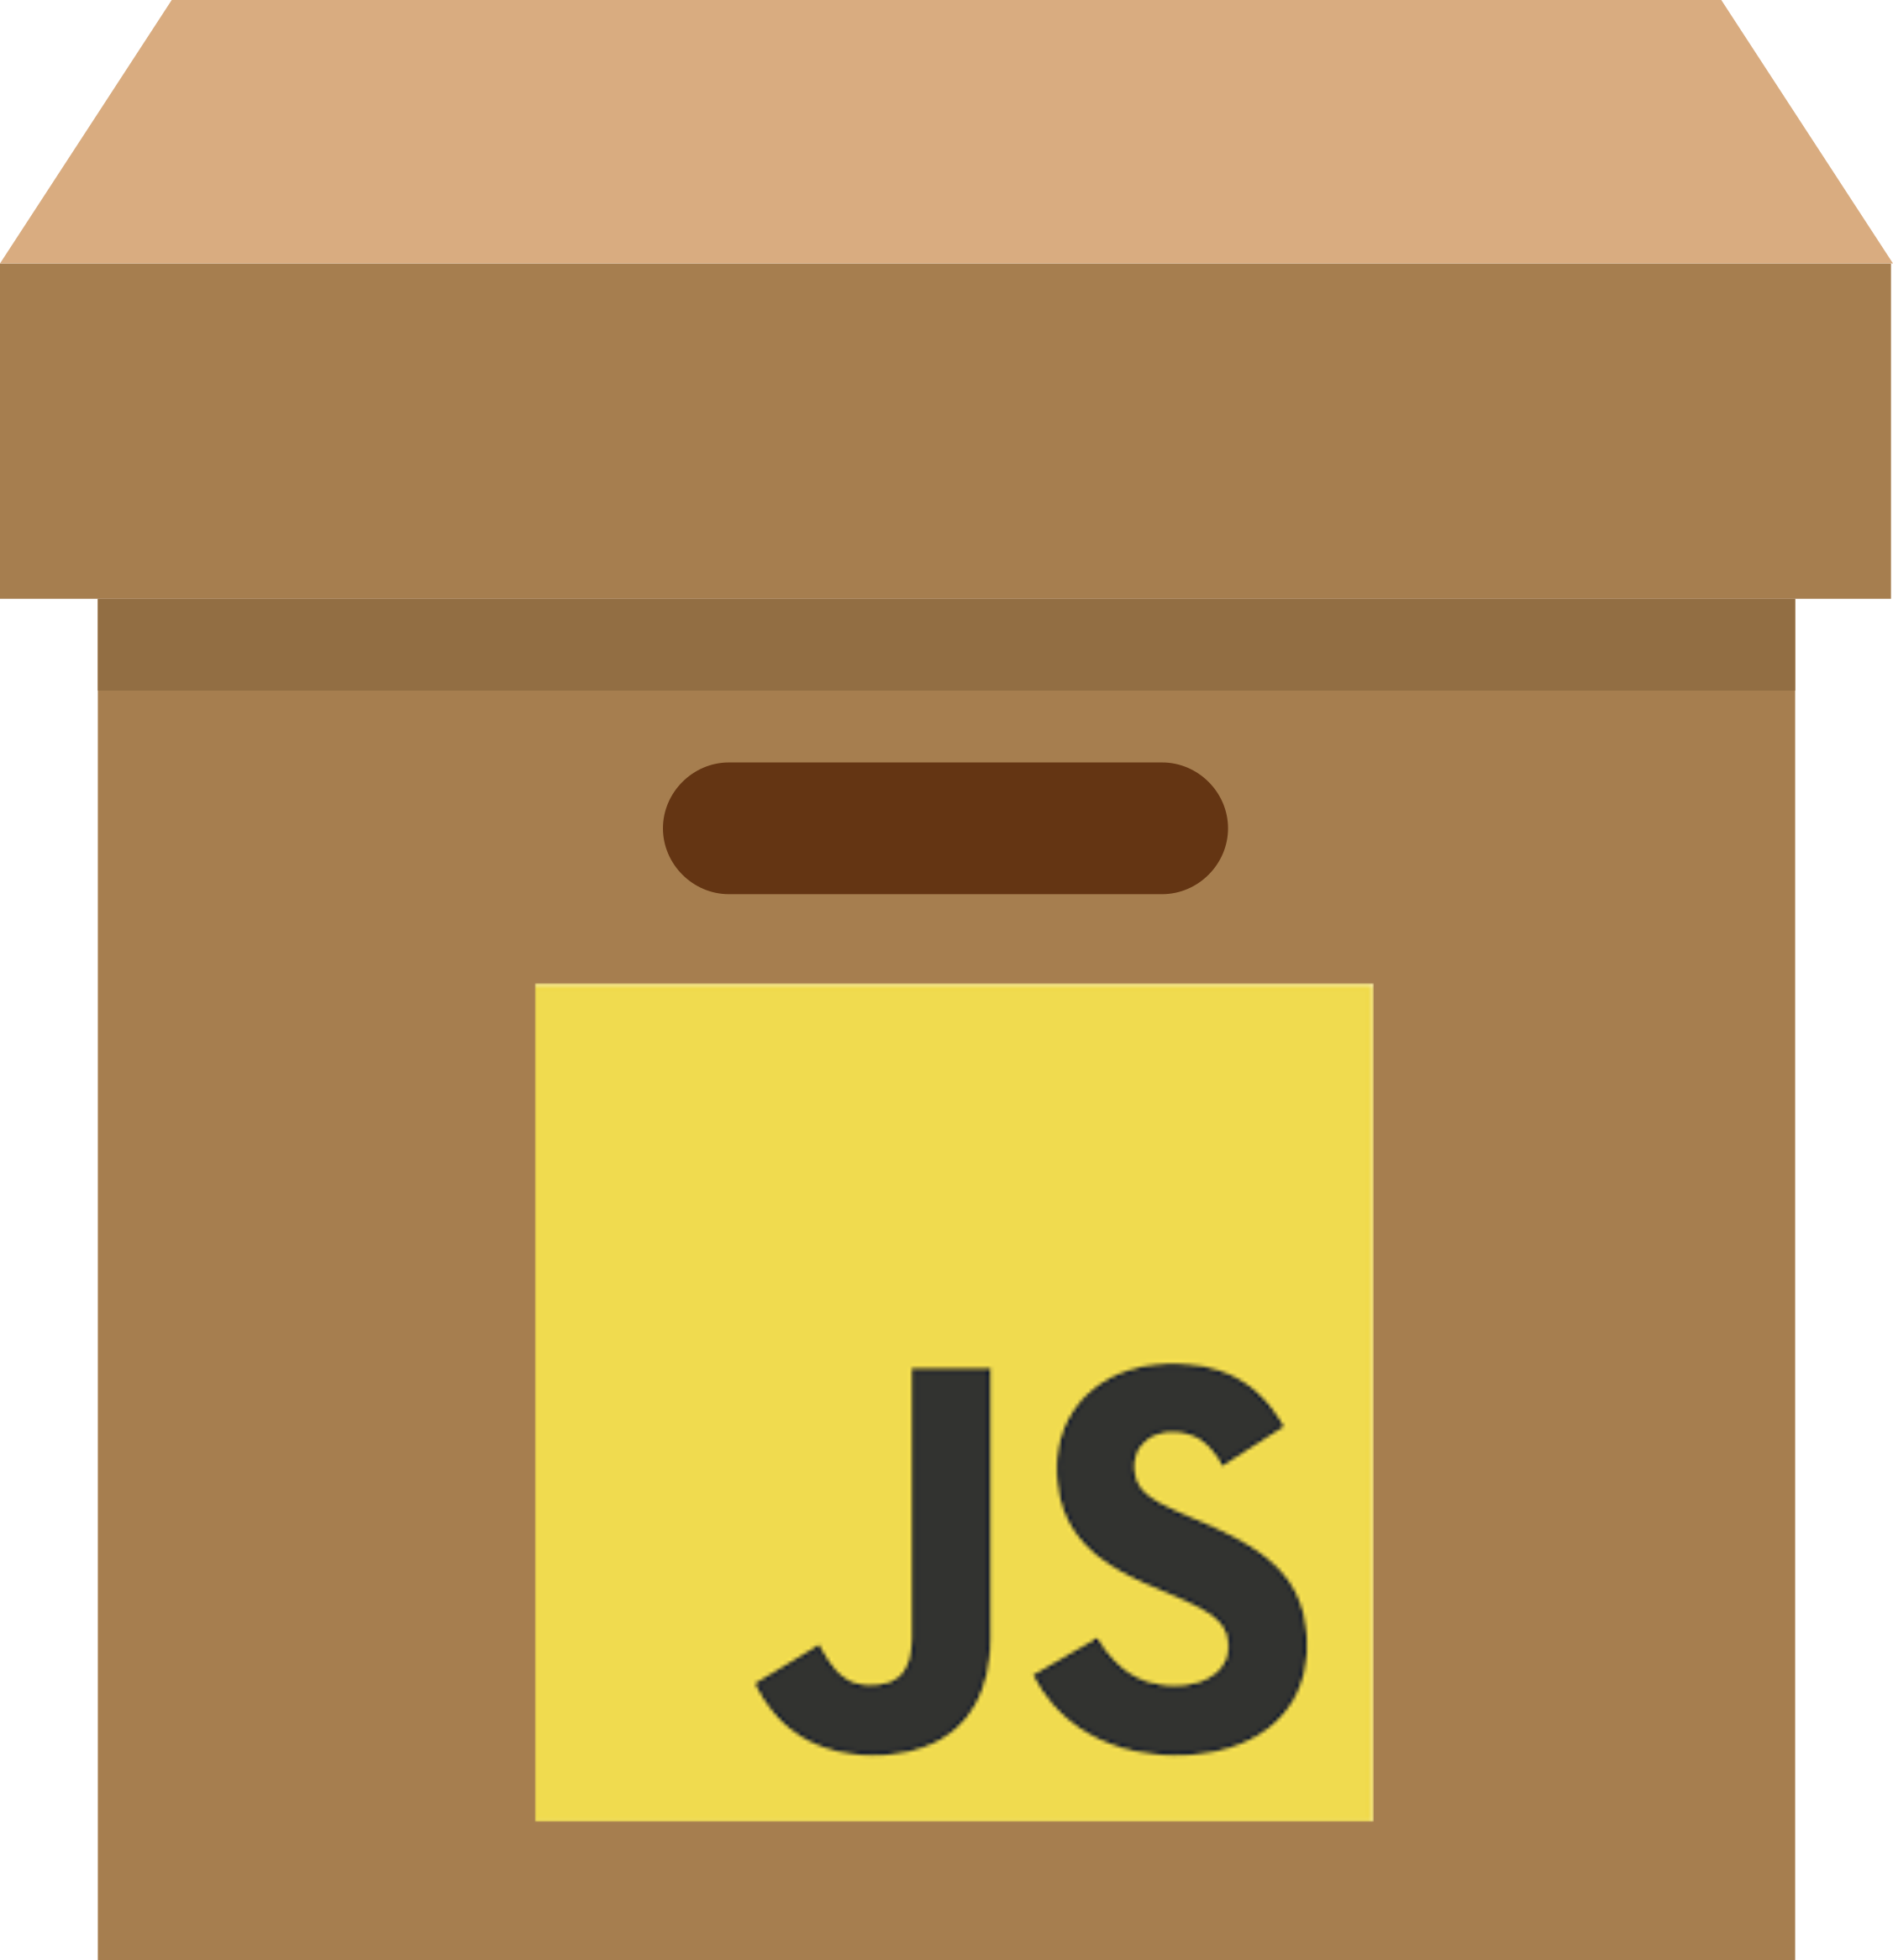 Full JavaScript Complete Pack - Visual Studio Marketplace